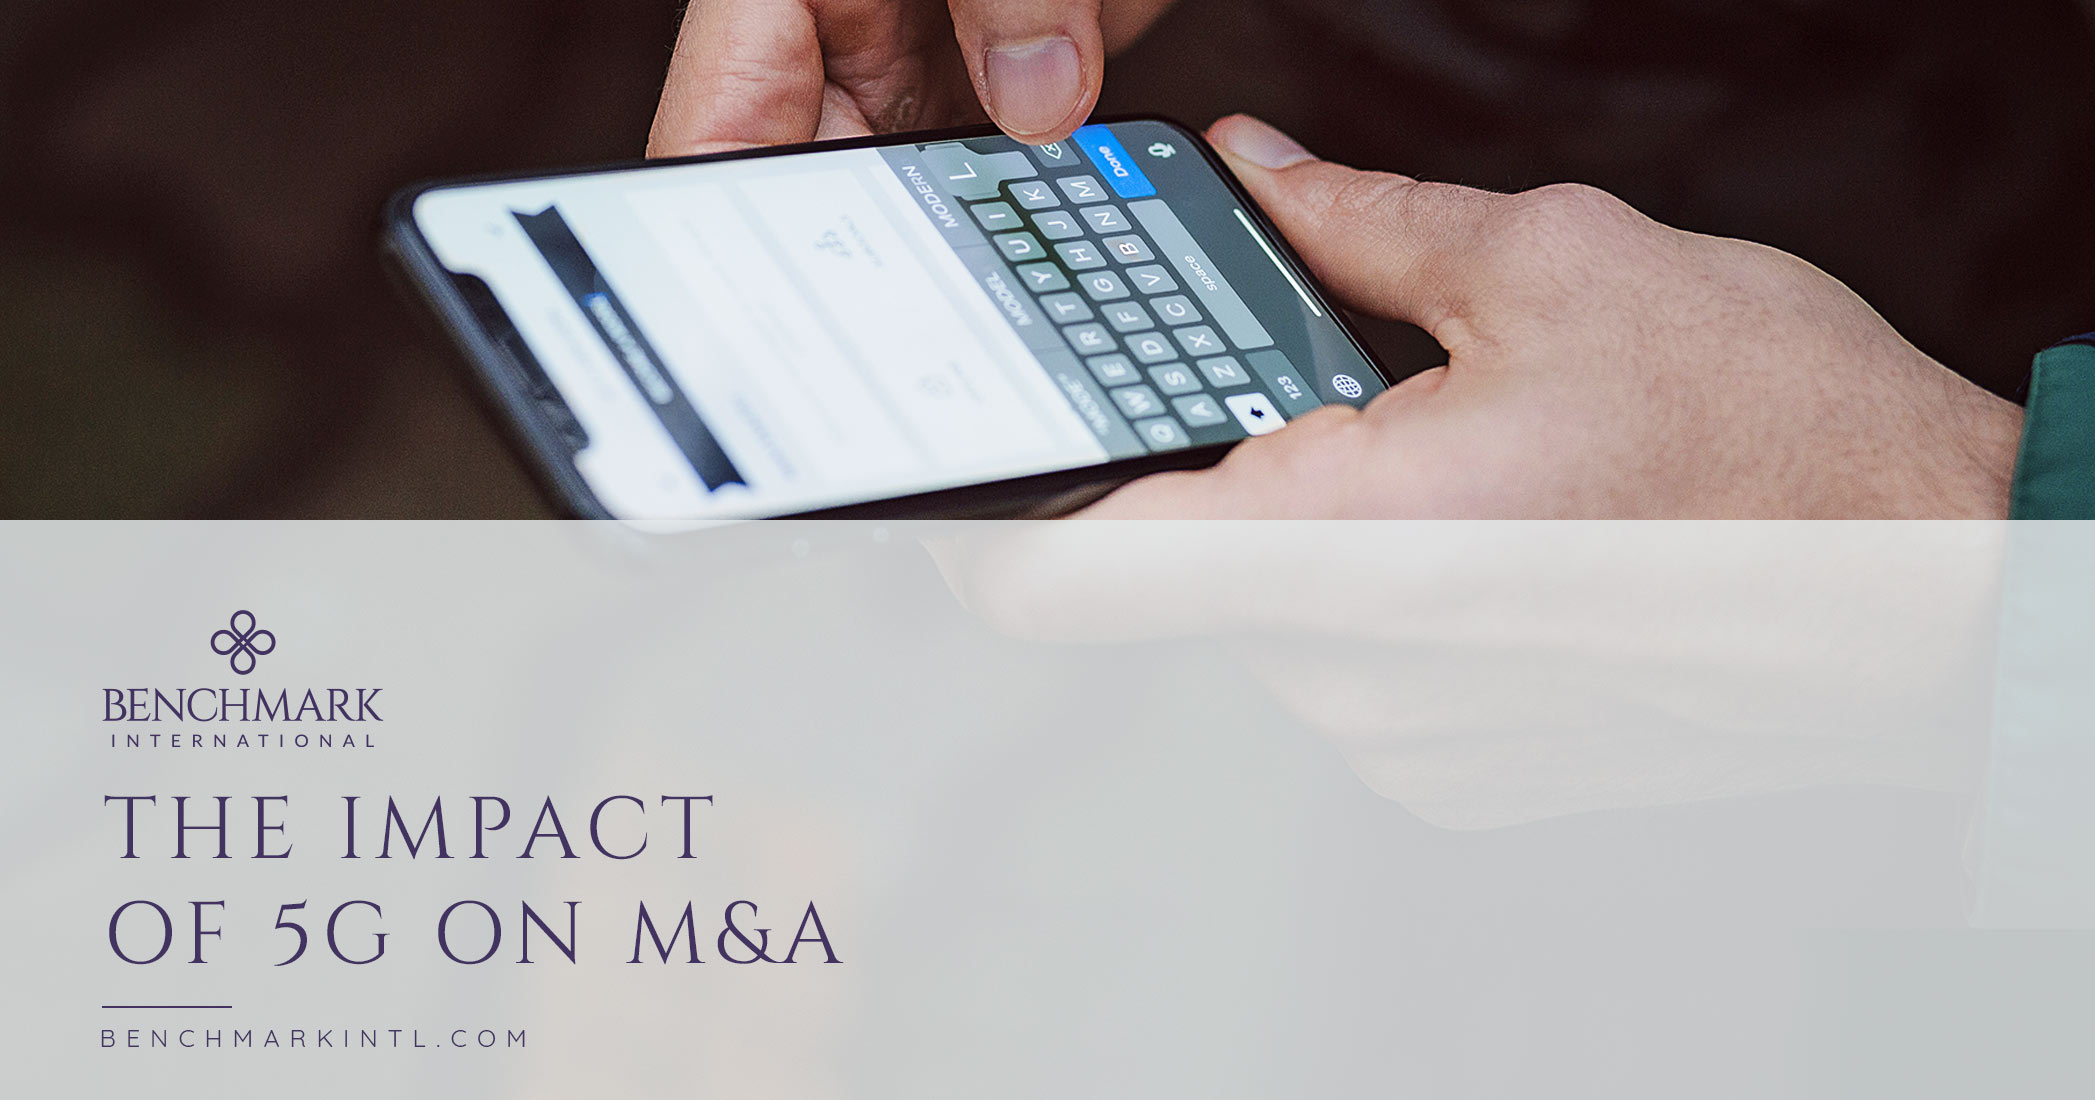 The Impact Of 5G On M&A